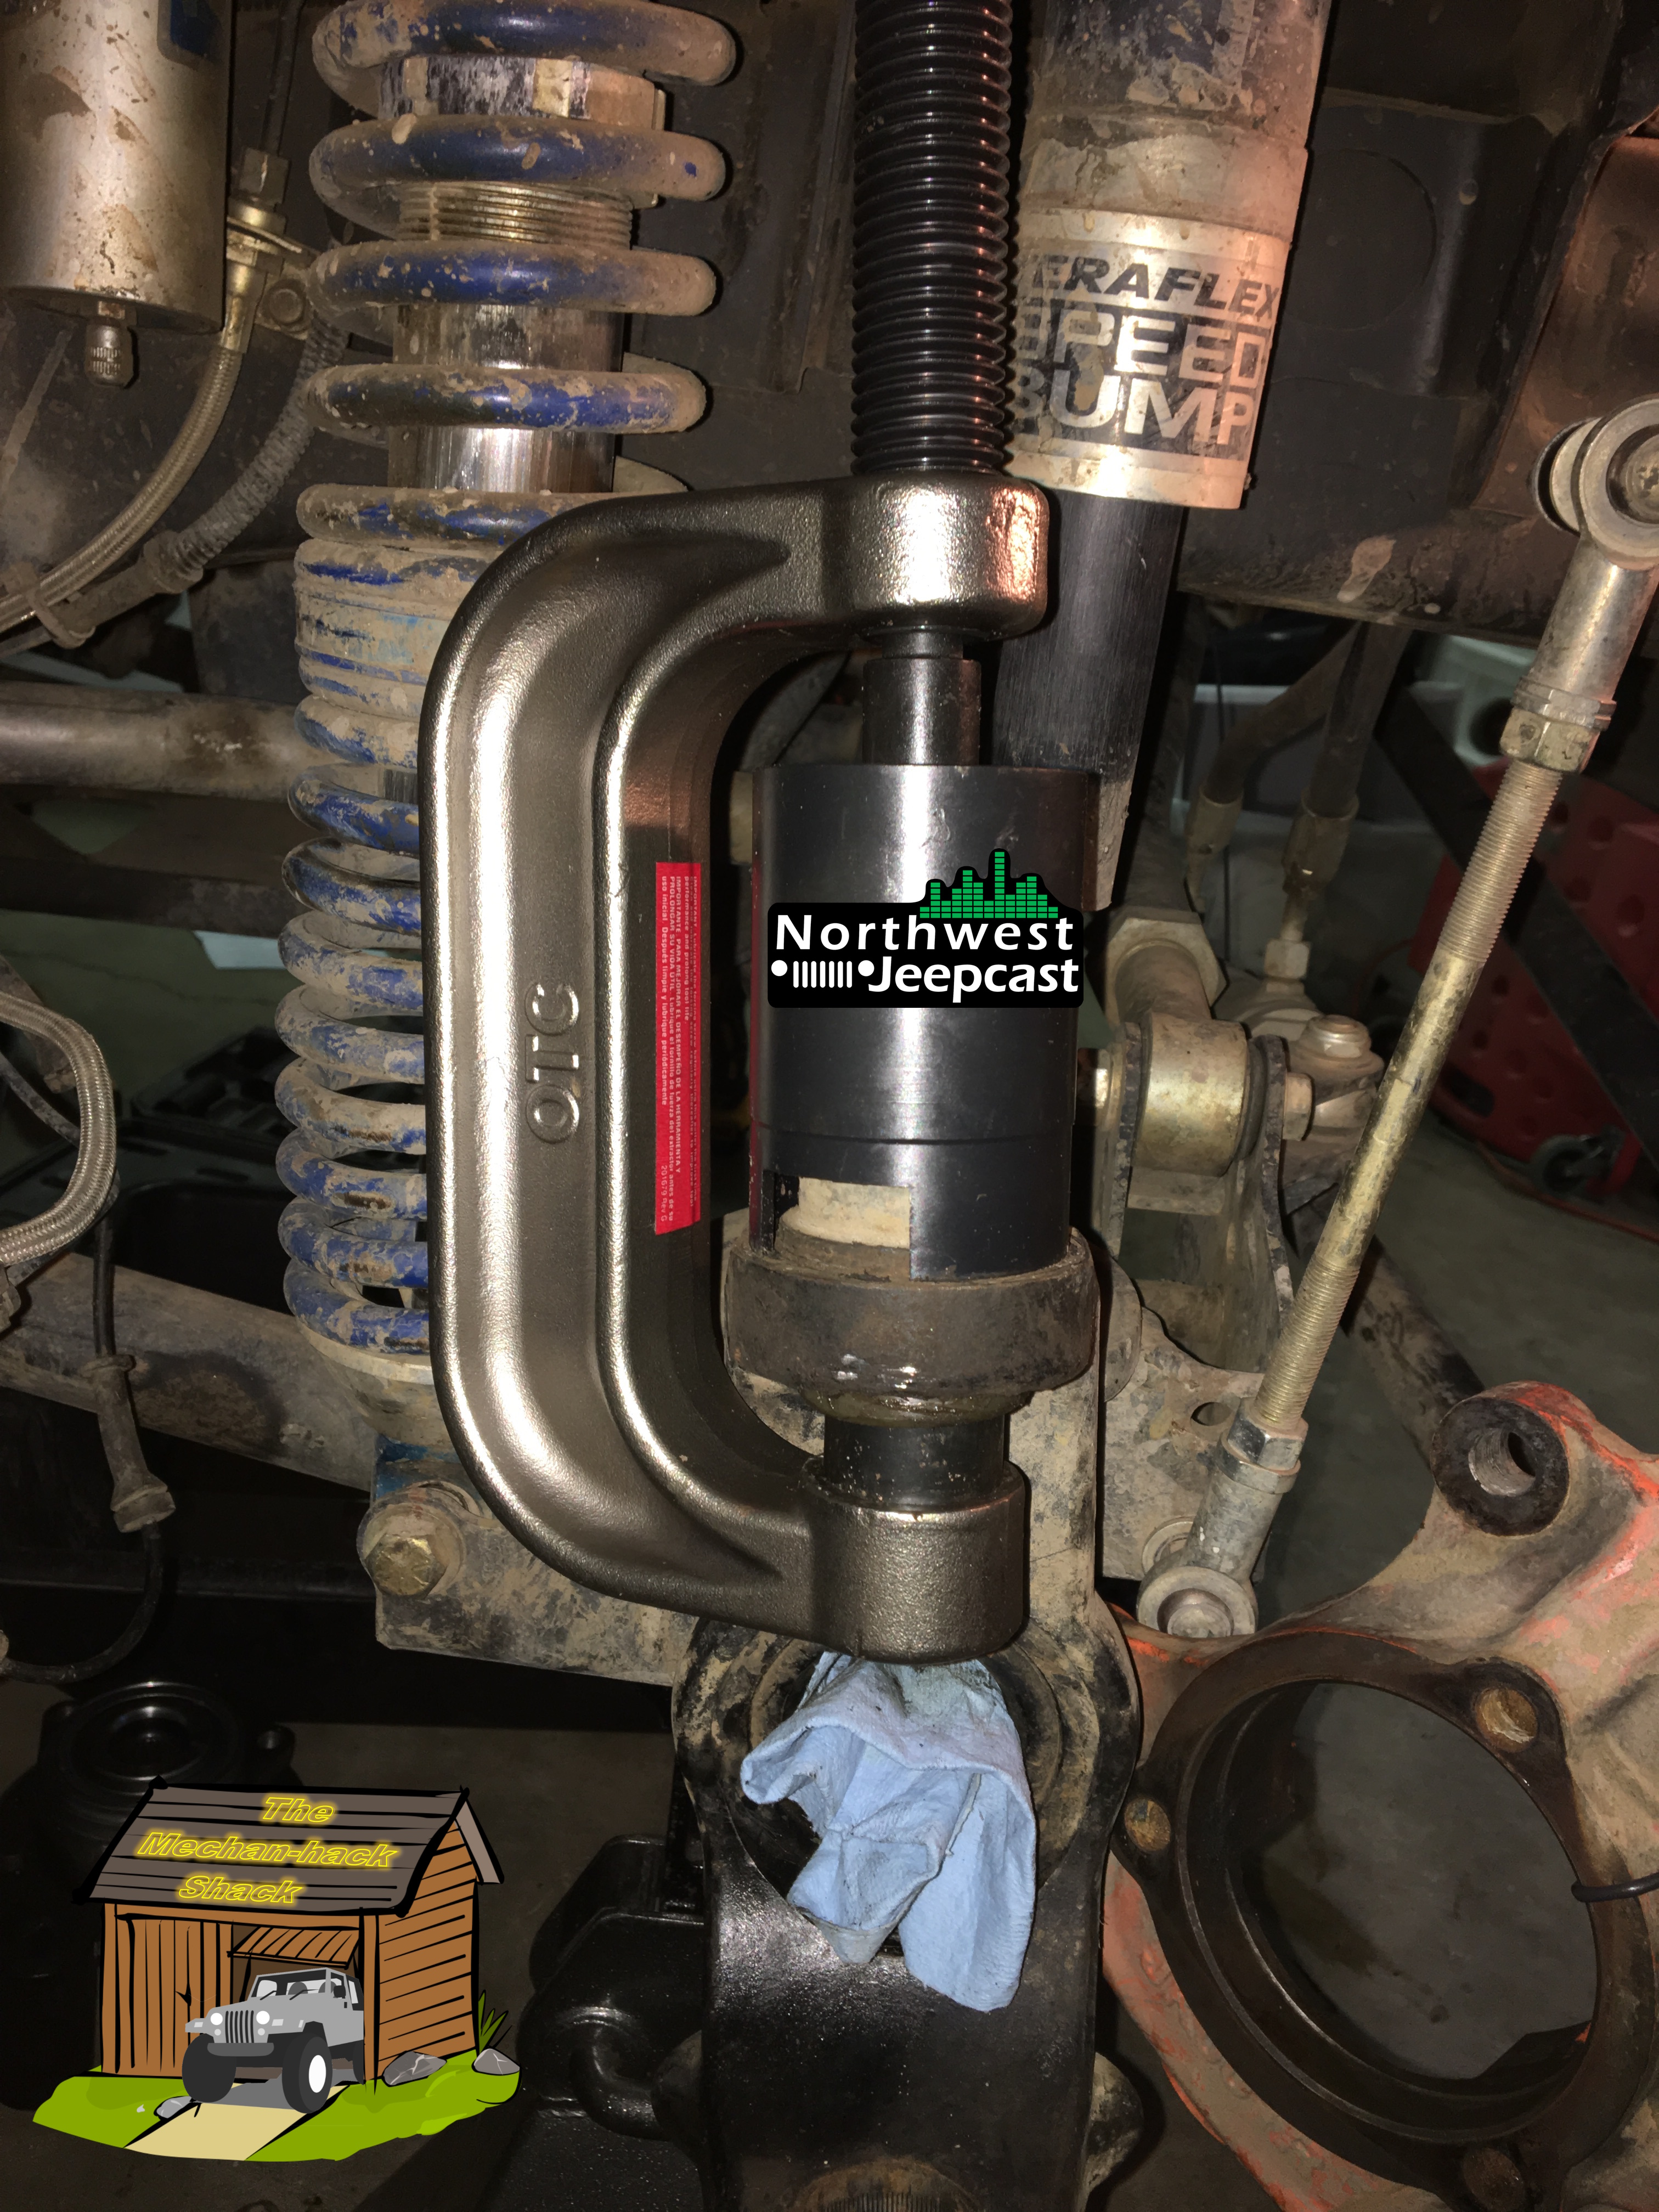 Northwest Jeepcast - Jeep Podcast - Dynatrac Ball Joint installation